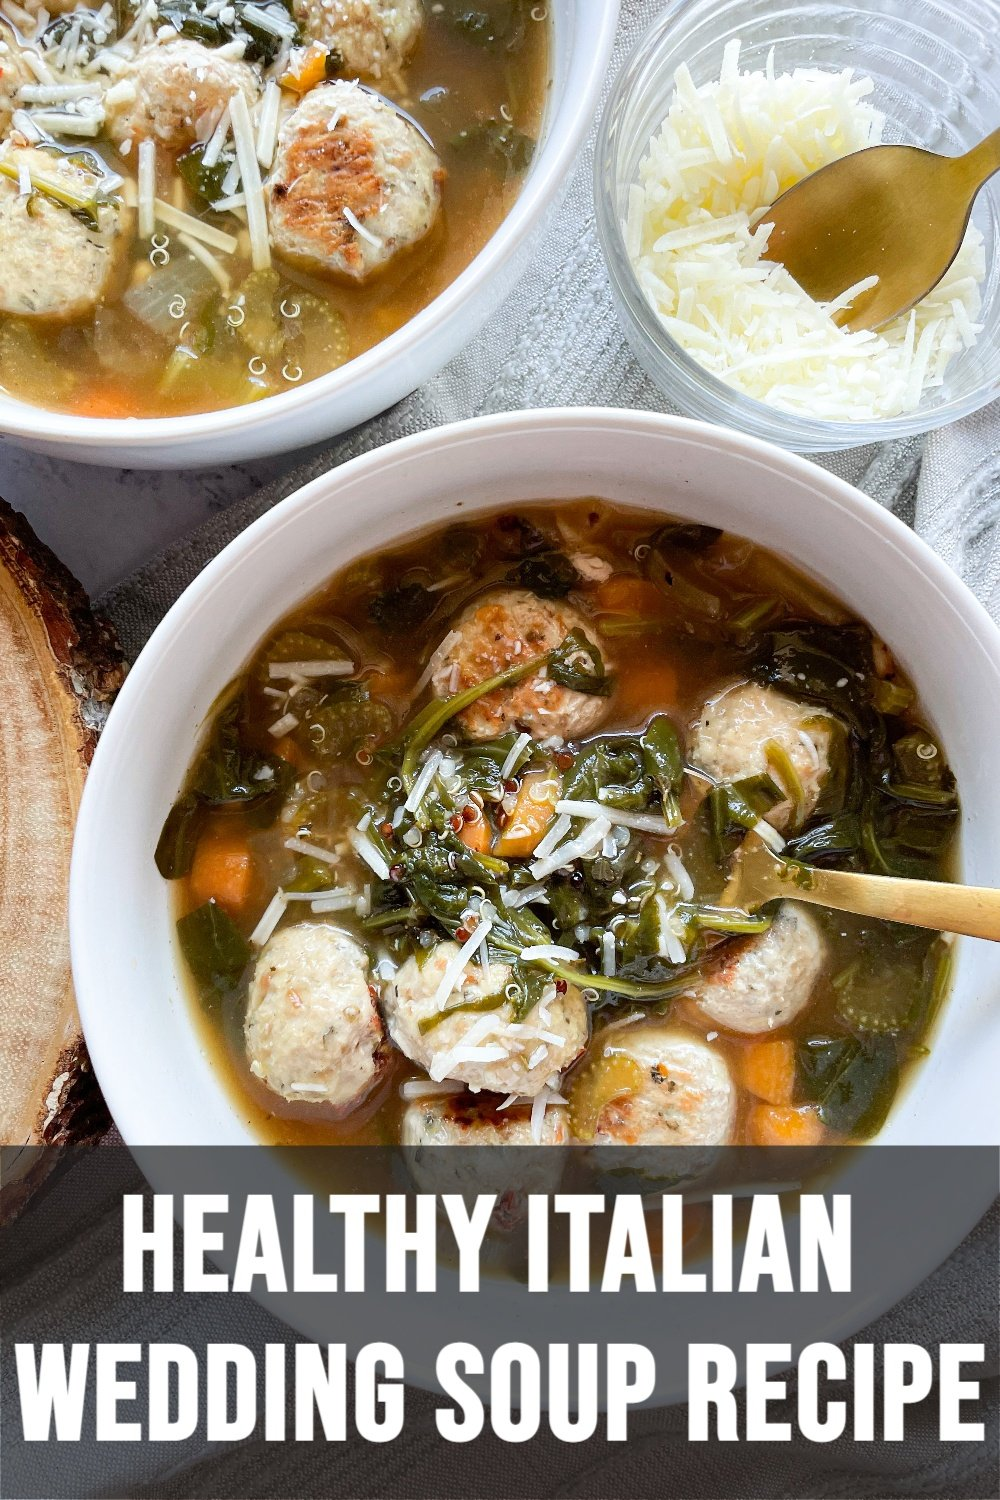 Healthy Italian Wedding Soup in 2 White Bowls, Gold Spoons and Cheese with Text Overlay